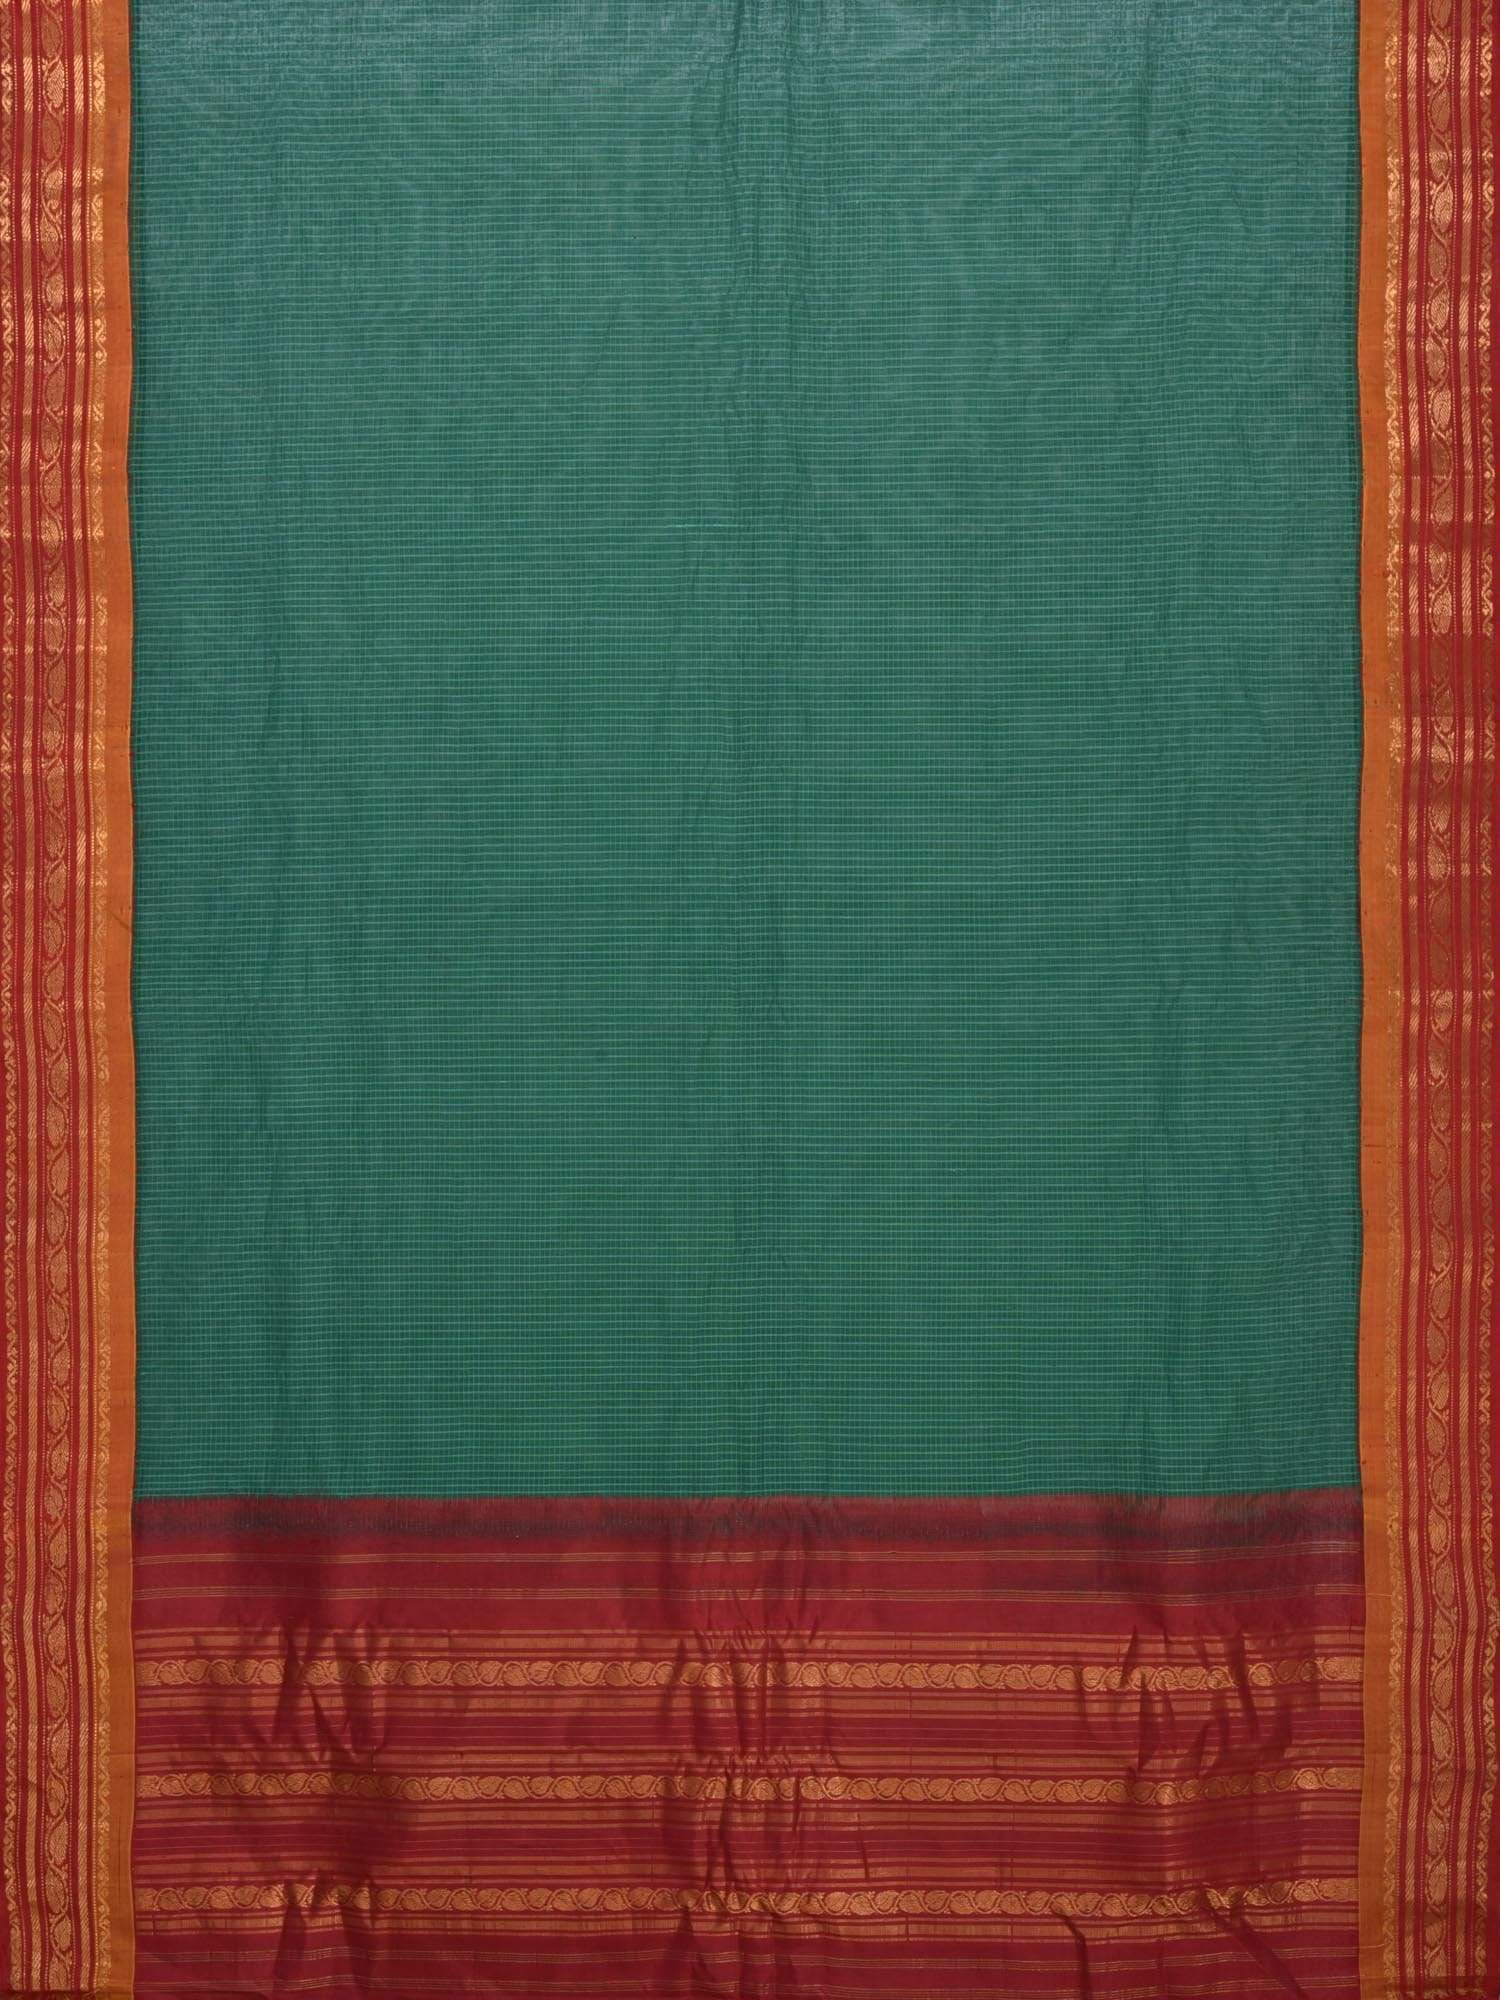 Green and Maroon Gadwal Cotton Handloom Saree with Checks Design No Blouse G0184